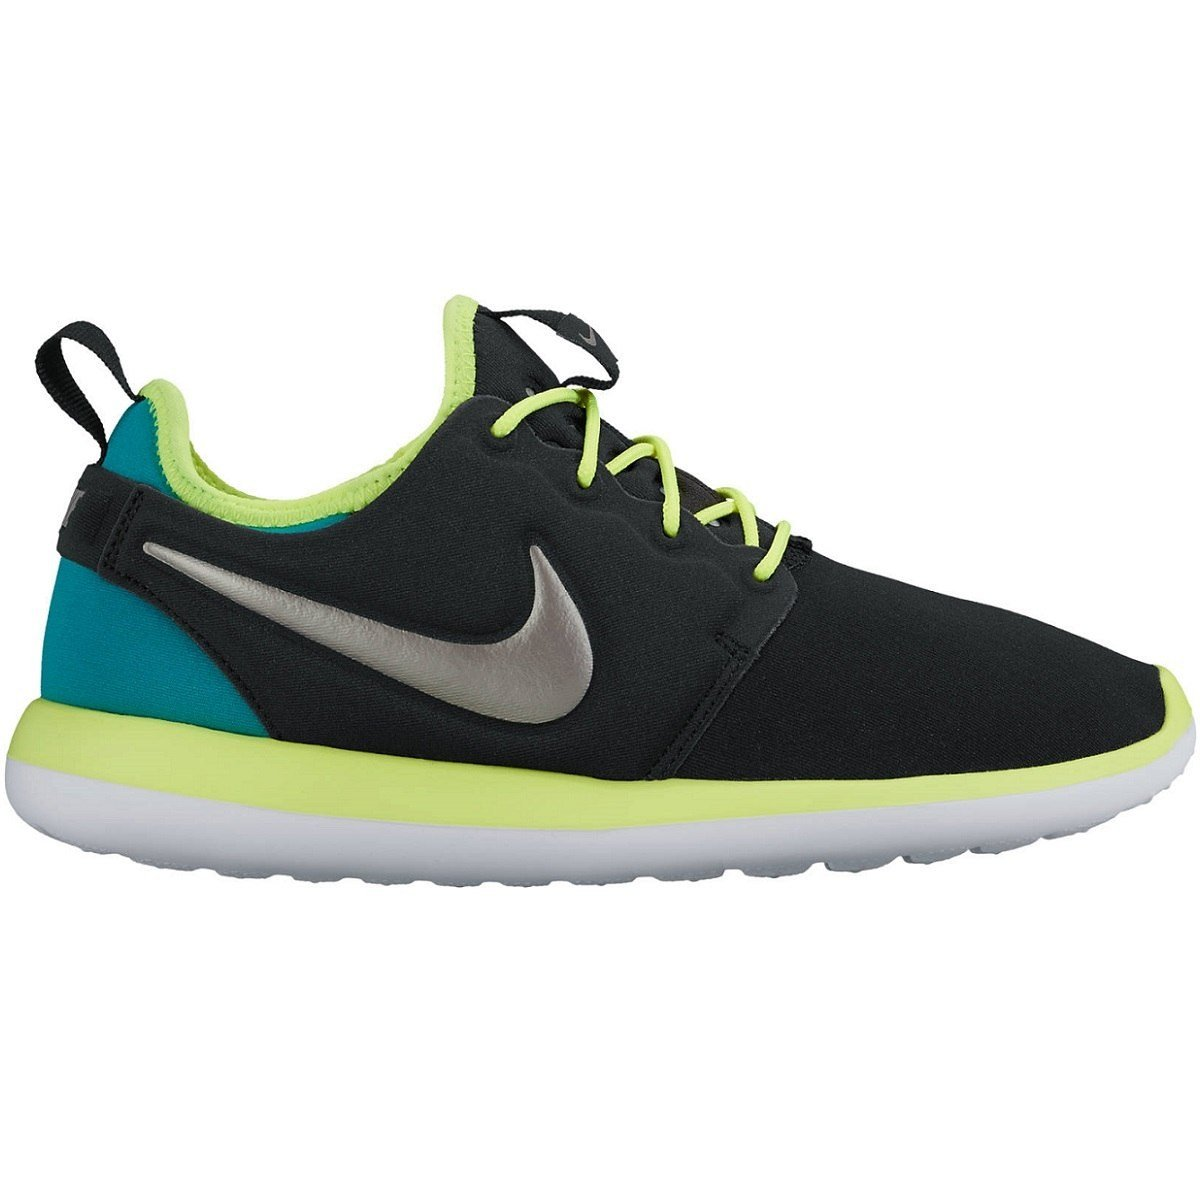 70a015f05a6ea NIKE ROSHE 2 (GS) Black/Volt/Rio Teal/Metallic Pewter 5.5 Youth US